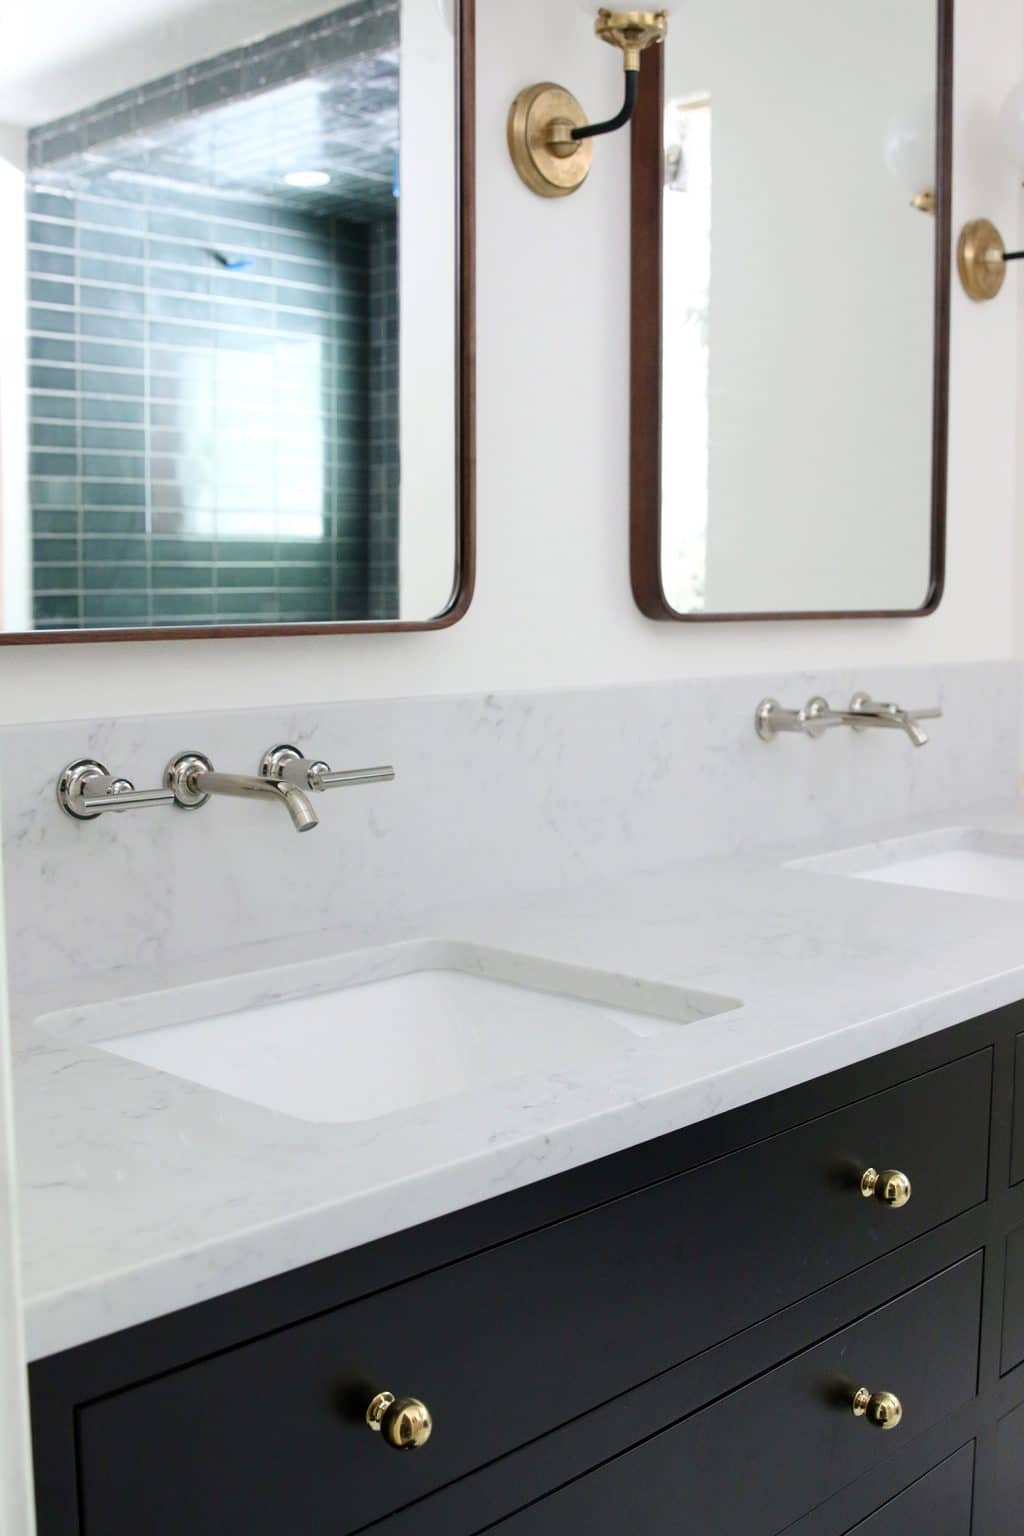 - Our Undermount Bathroom Sink & Wall-Mount Faucets Installed - Chris Loves  Julia